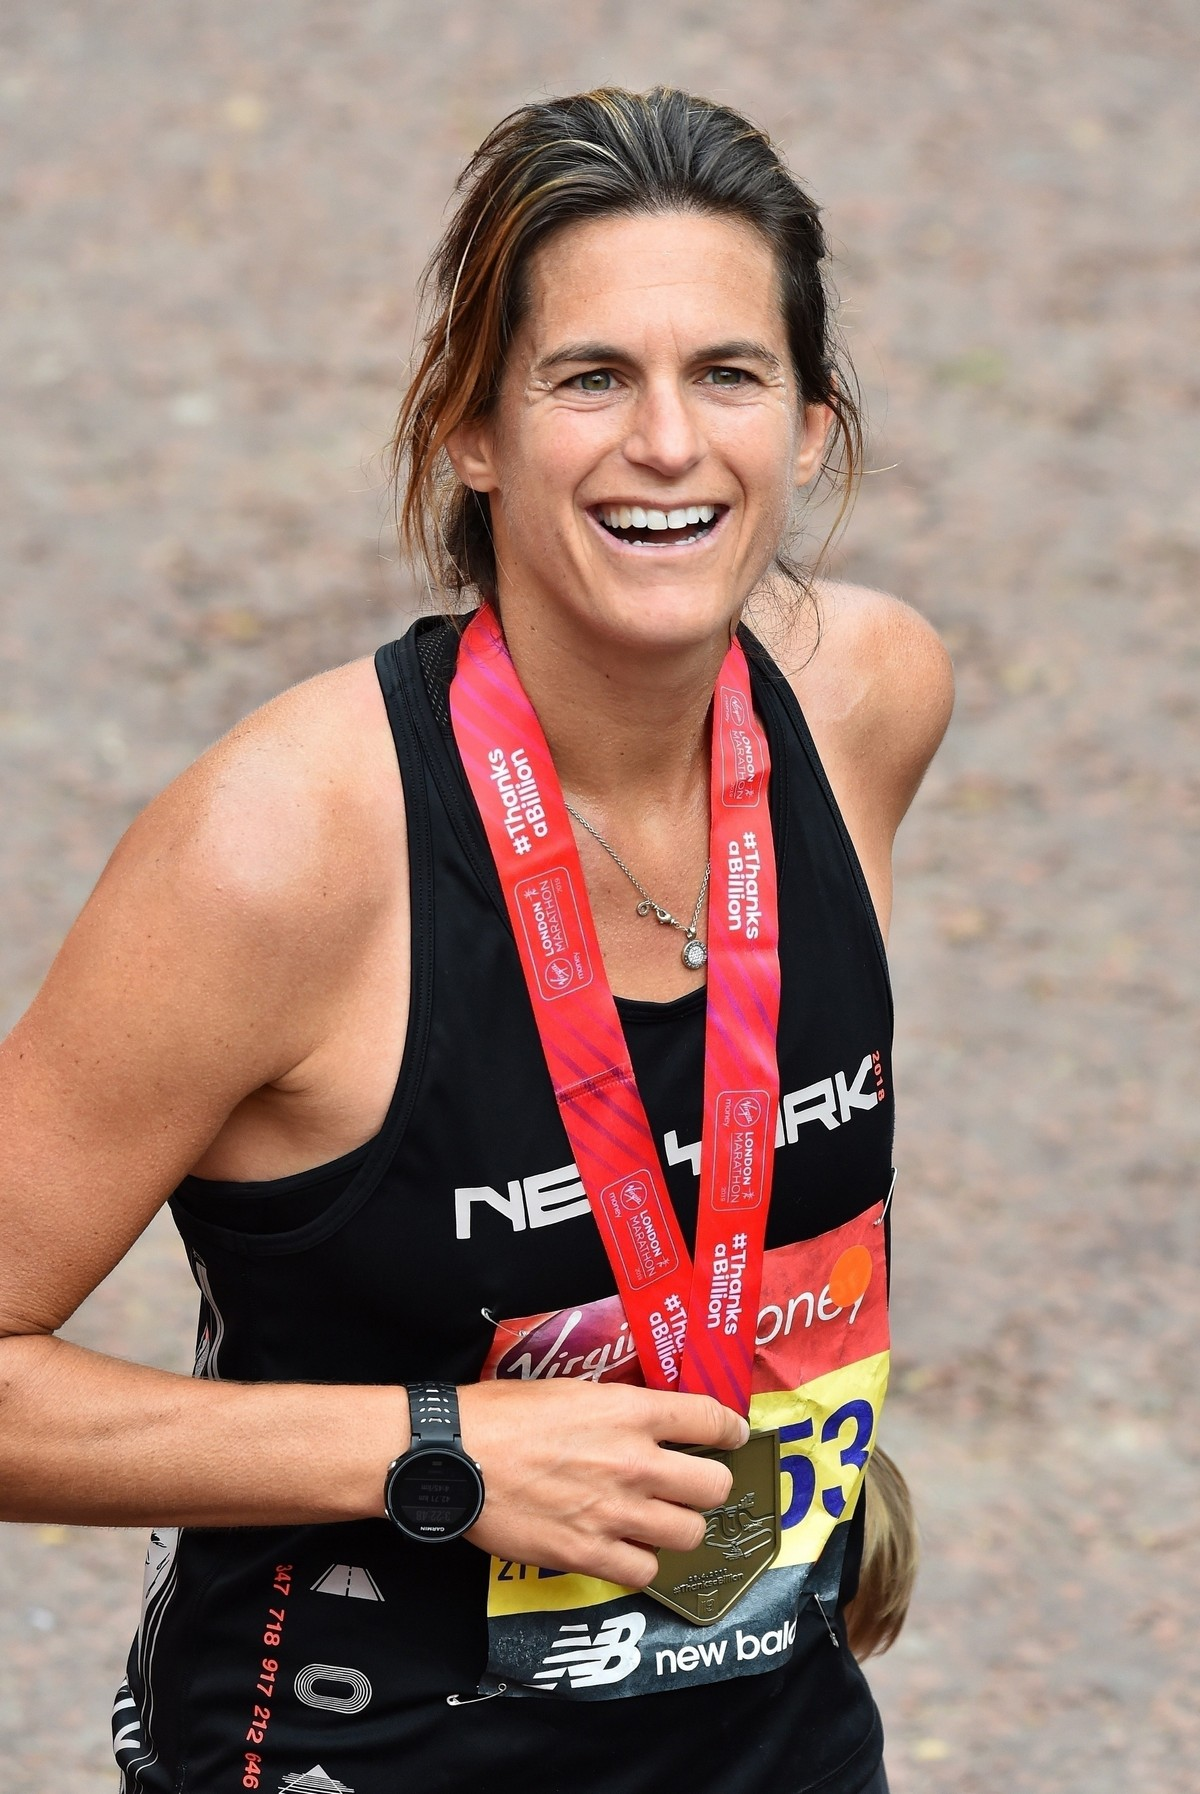 Amelie Mauresmo at The London Marathon Finish Line 2019/04/28 1